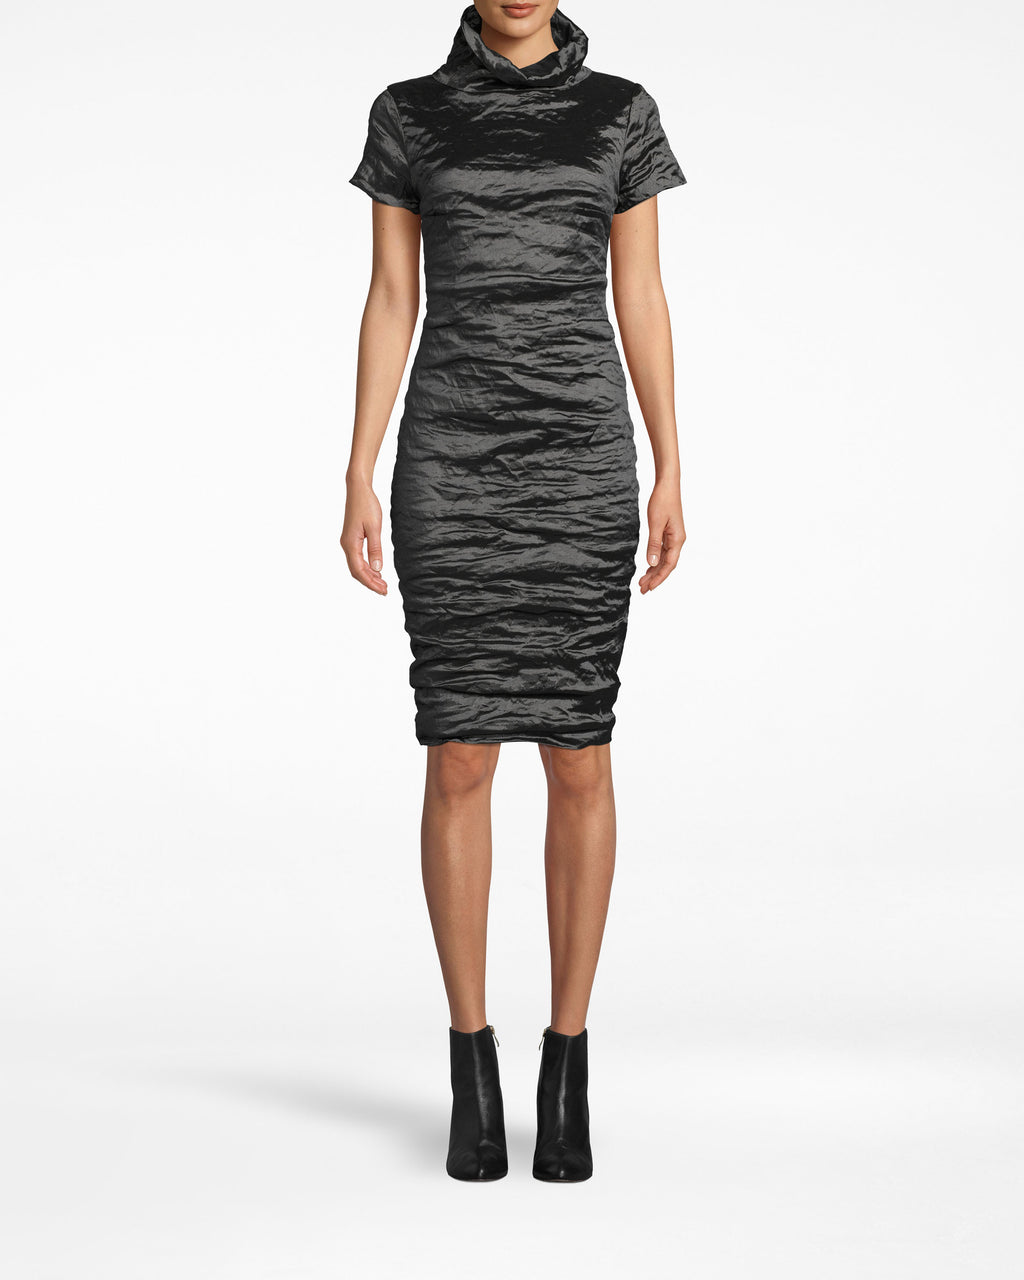 CD20036 - HIGH NECK DRESS - dresses - short - The gathered high neck on this textured short sleeve dress lengthens the silhouette. The dress is fitted throughout and hugs your curves. Pair with elegant high heels. The exposed back zipper extends to the collar.